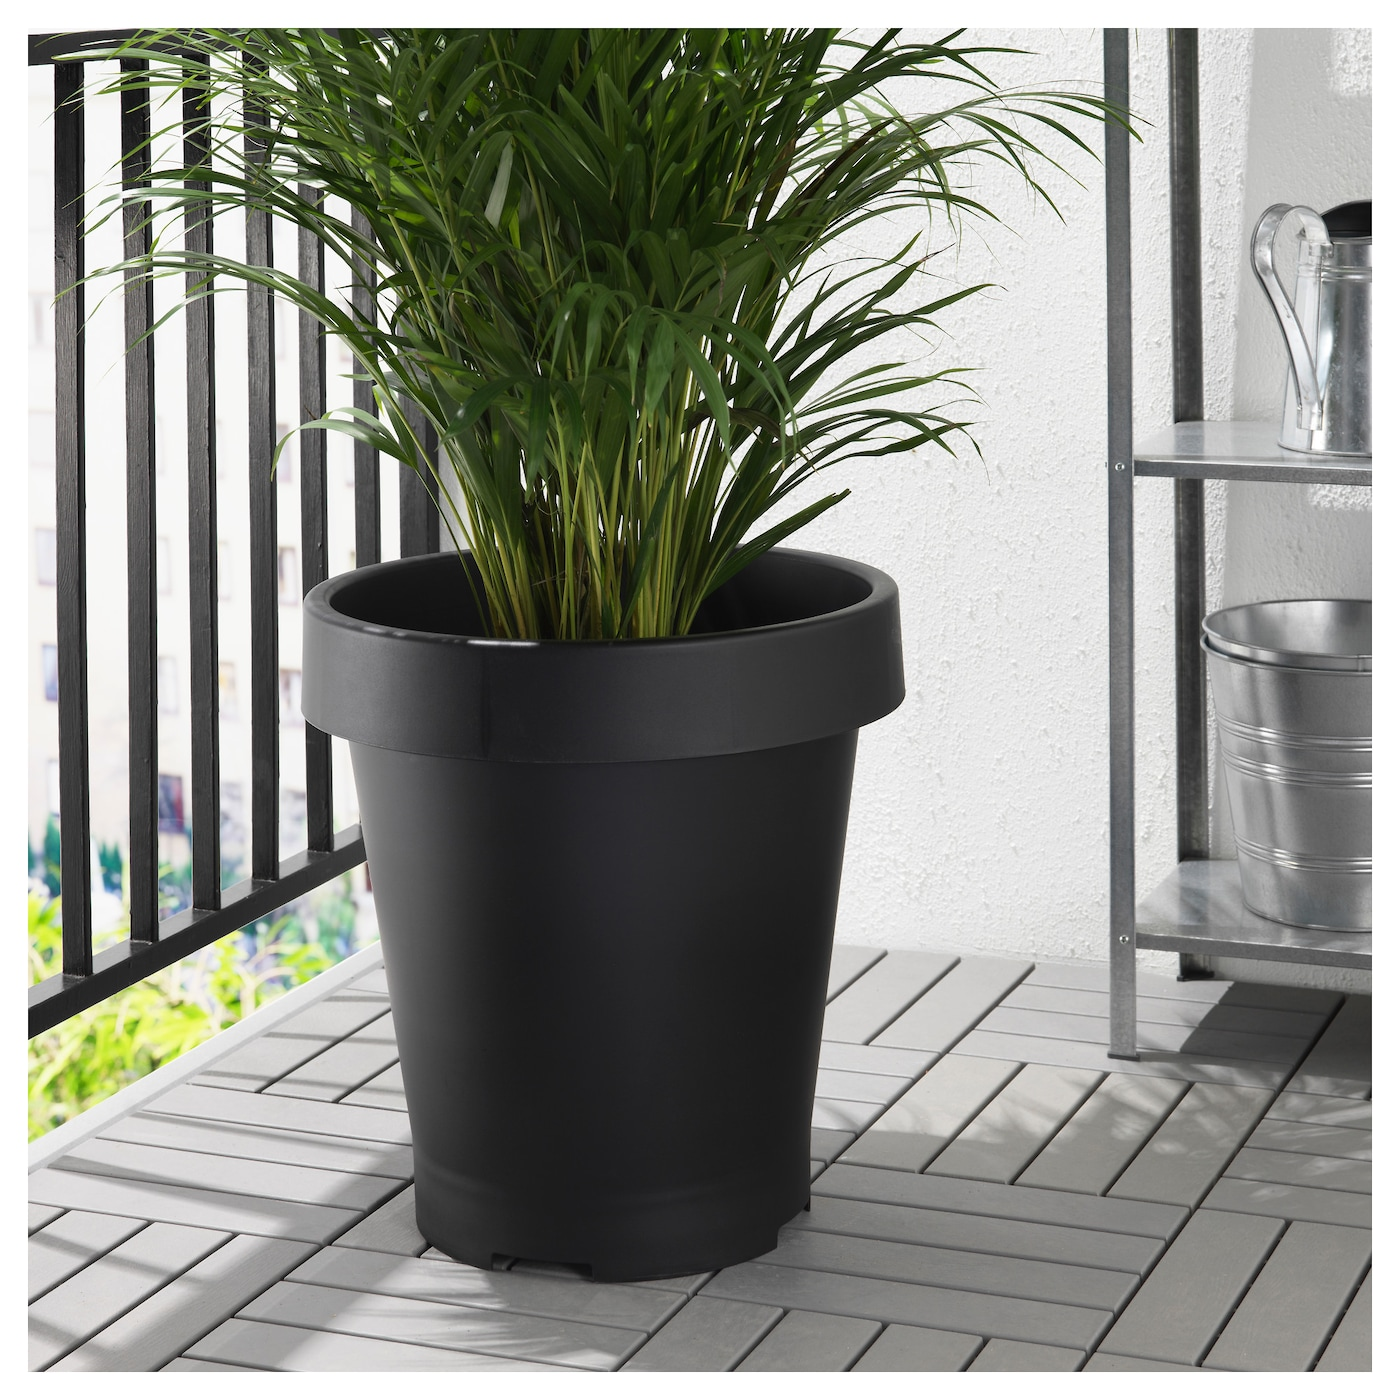 IKEA GRÄVA plant pot Decorate your home with plants combined with a plant pot to suit your style.